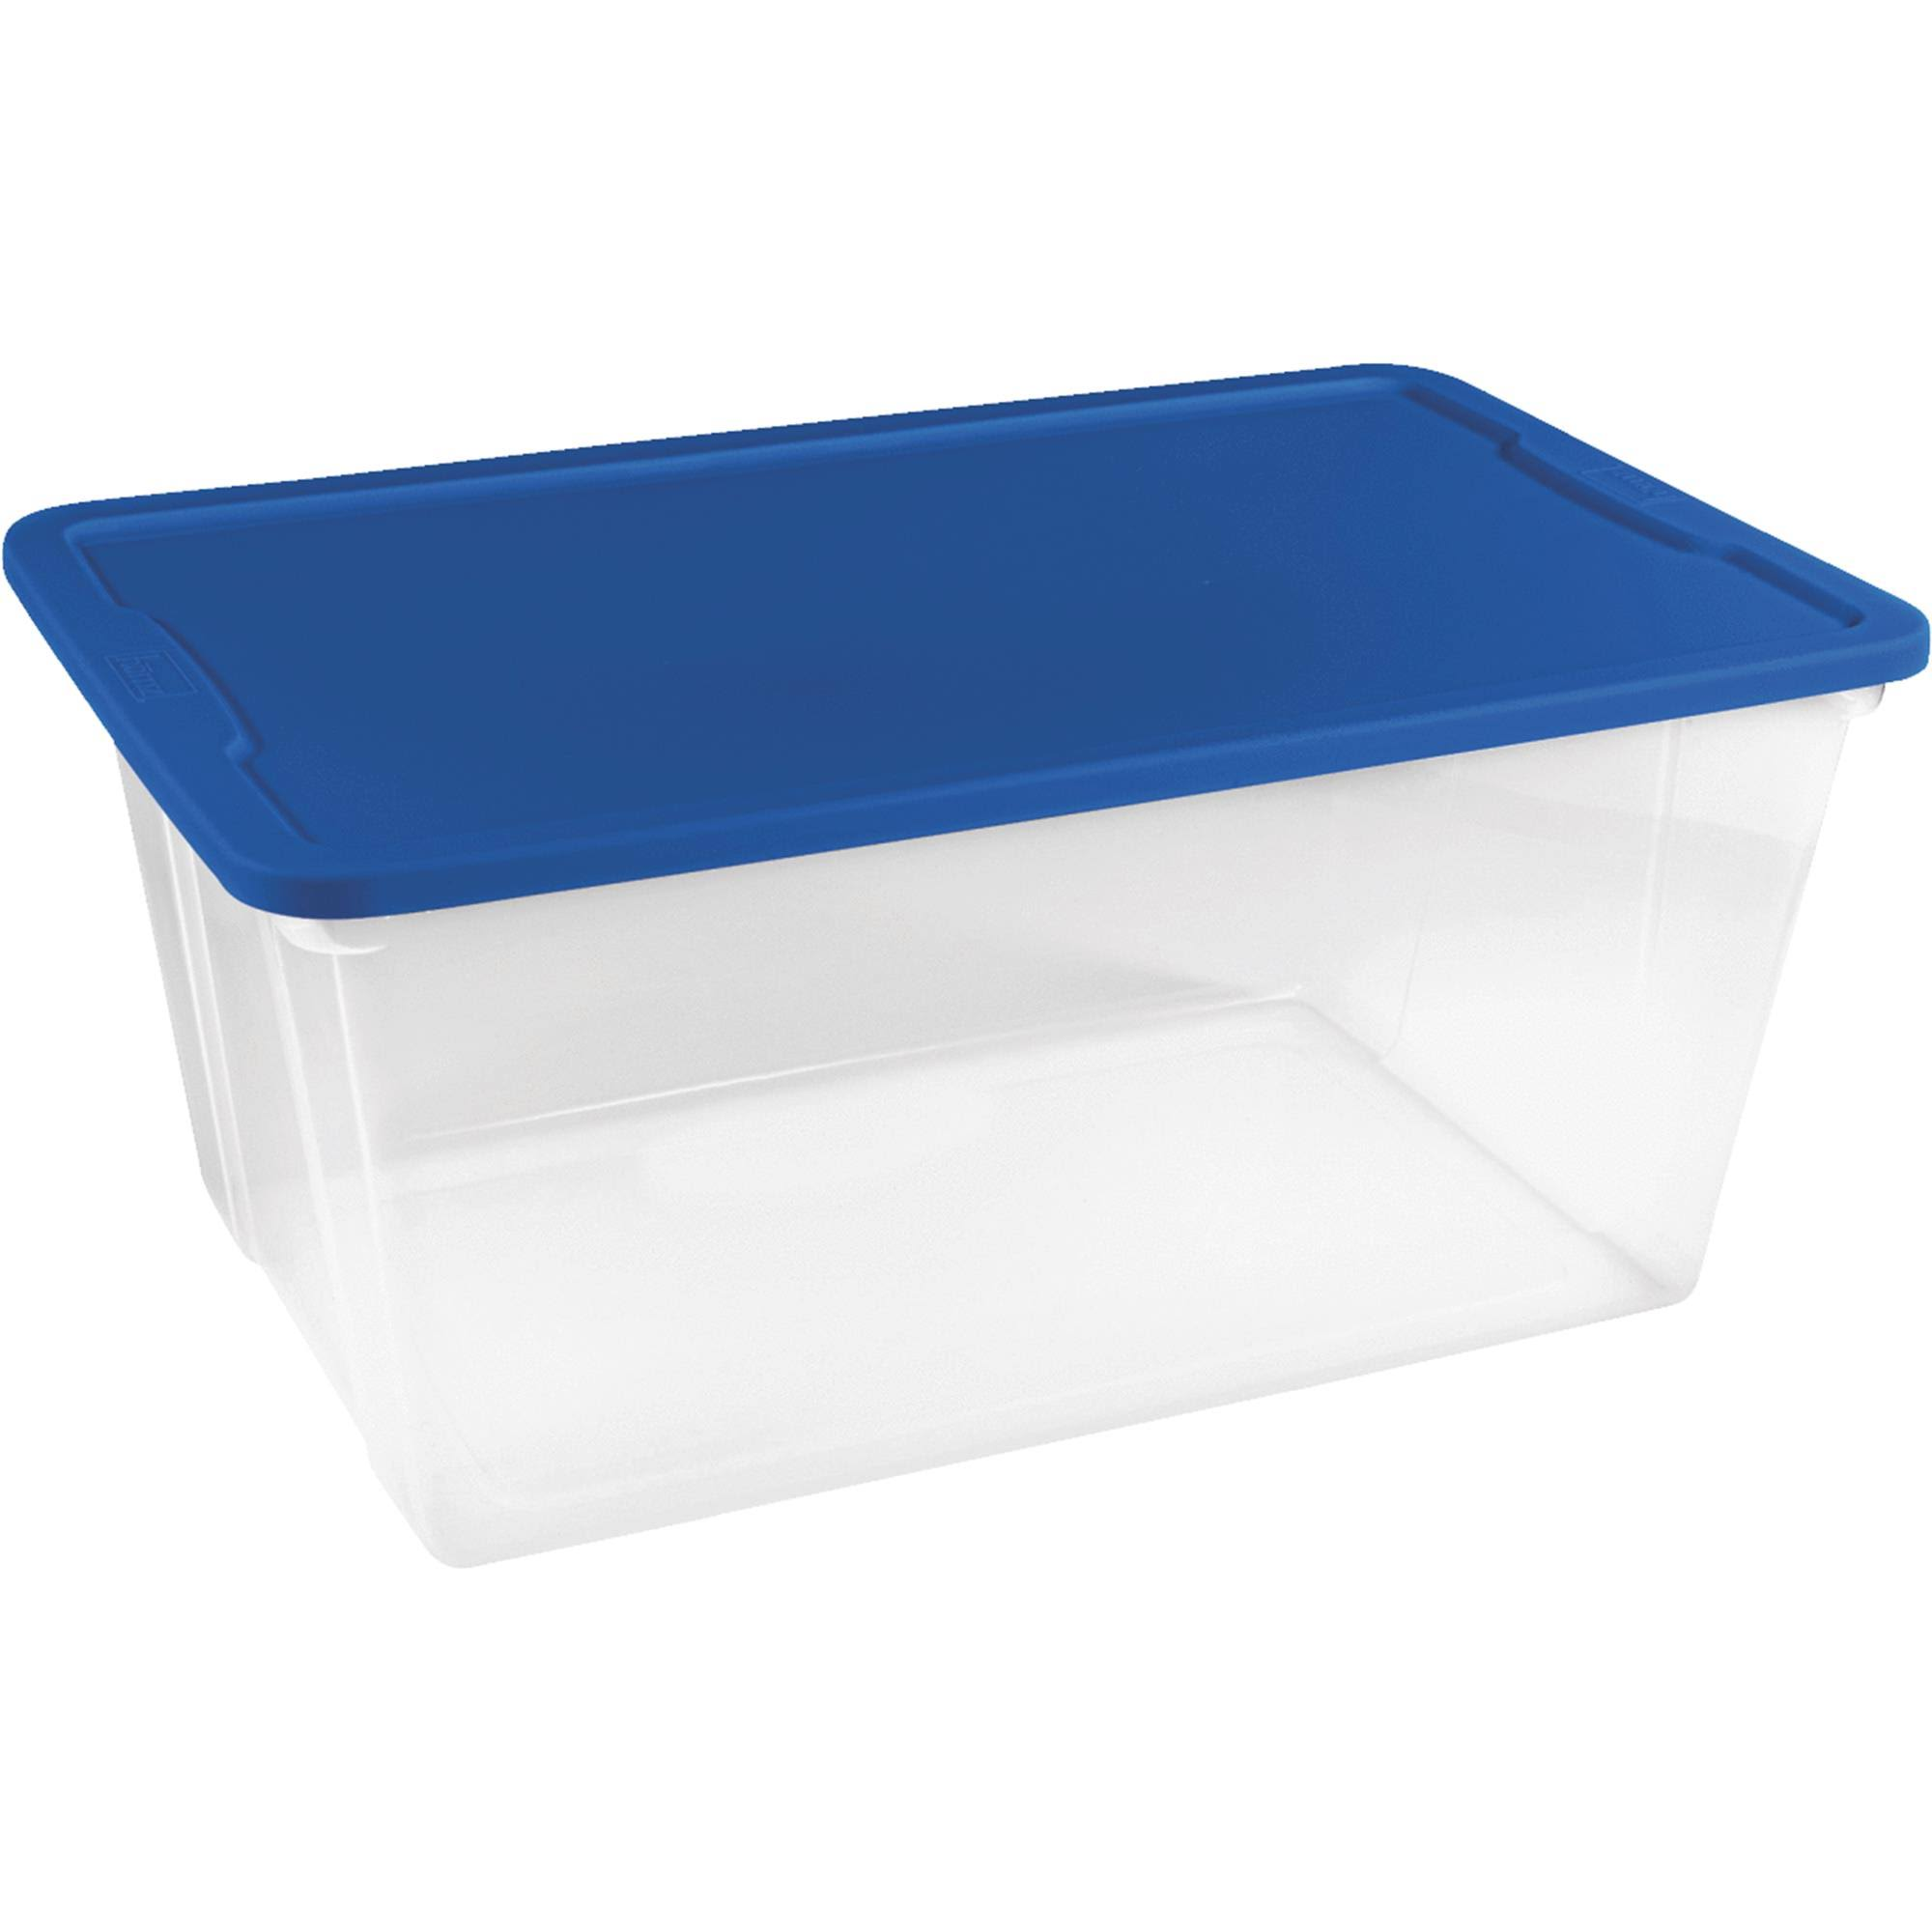 Homz Storage Tote - Clear, Blue Lid, 90qt